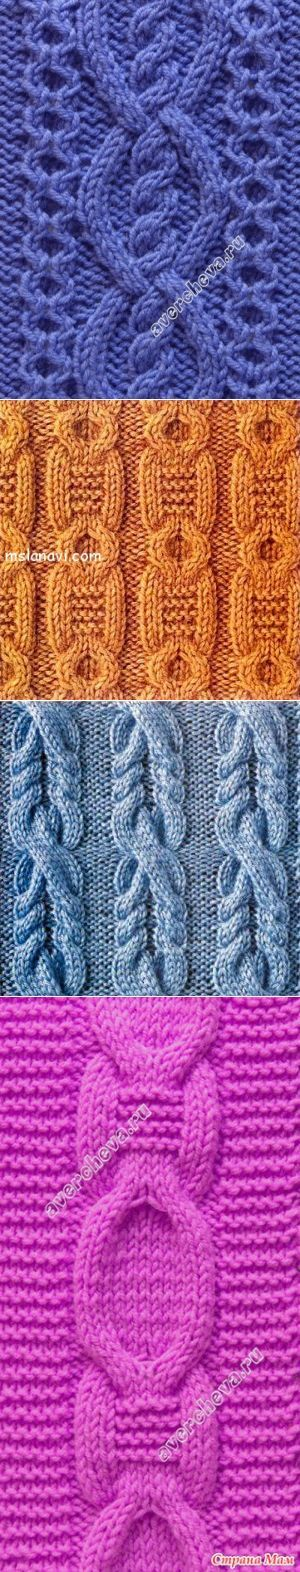 The 1827 Best Cables Irish Ish Images On Pinterest Knit